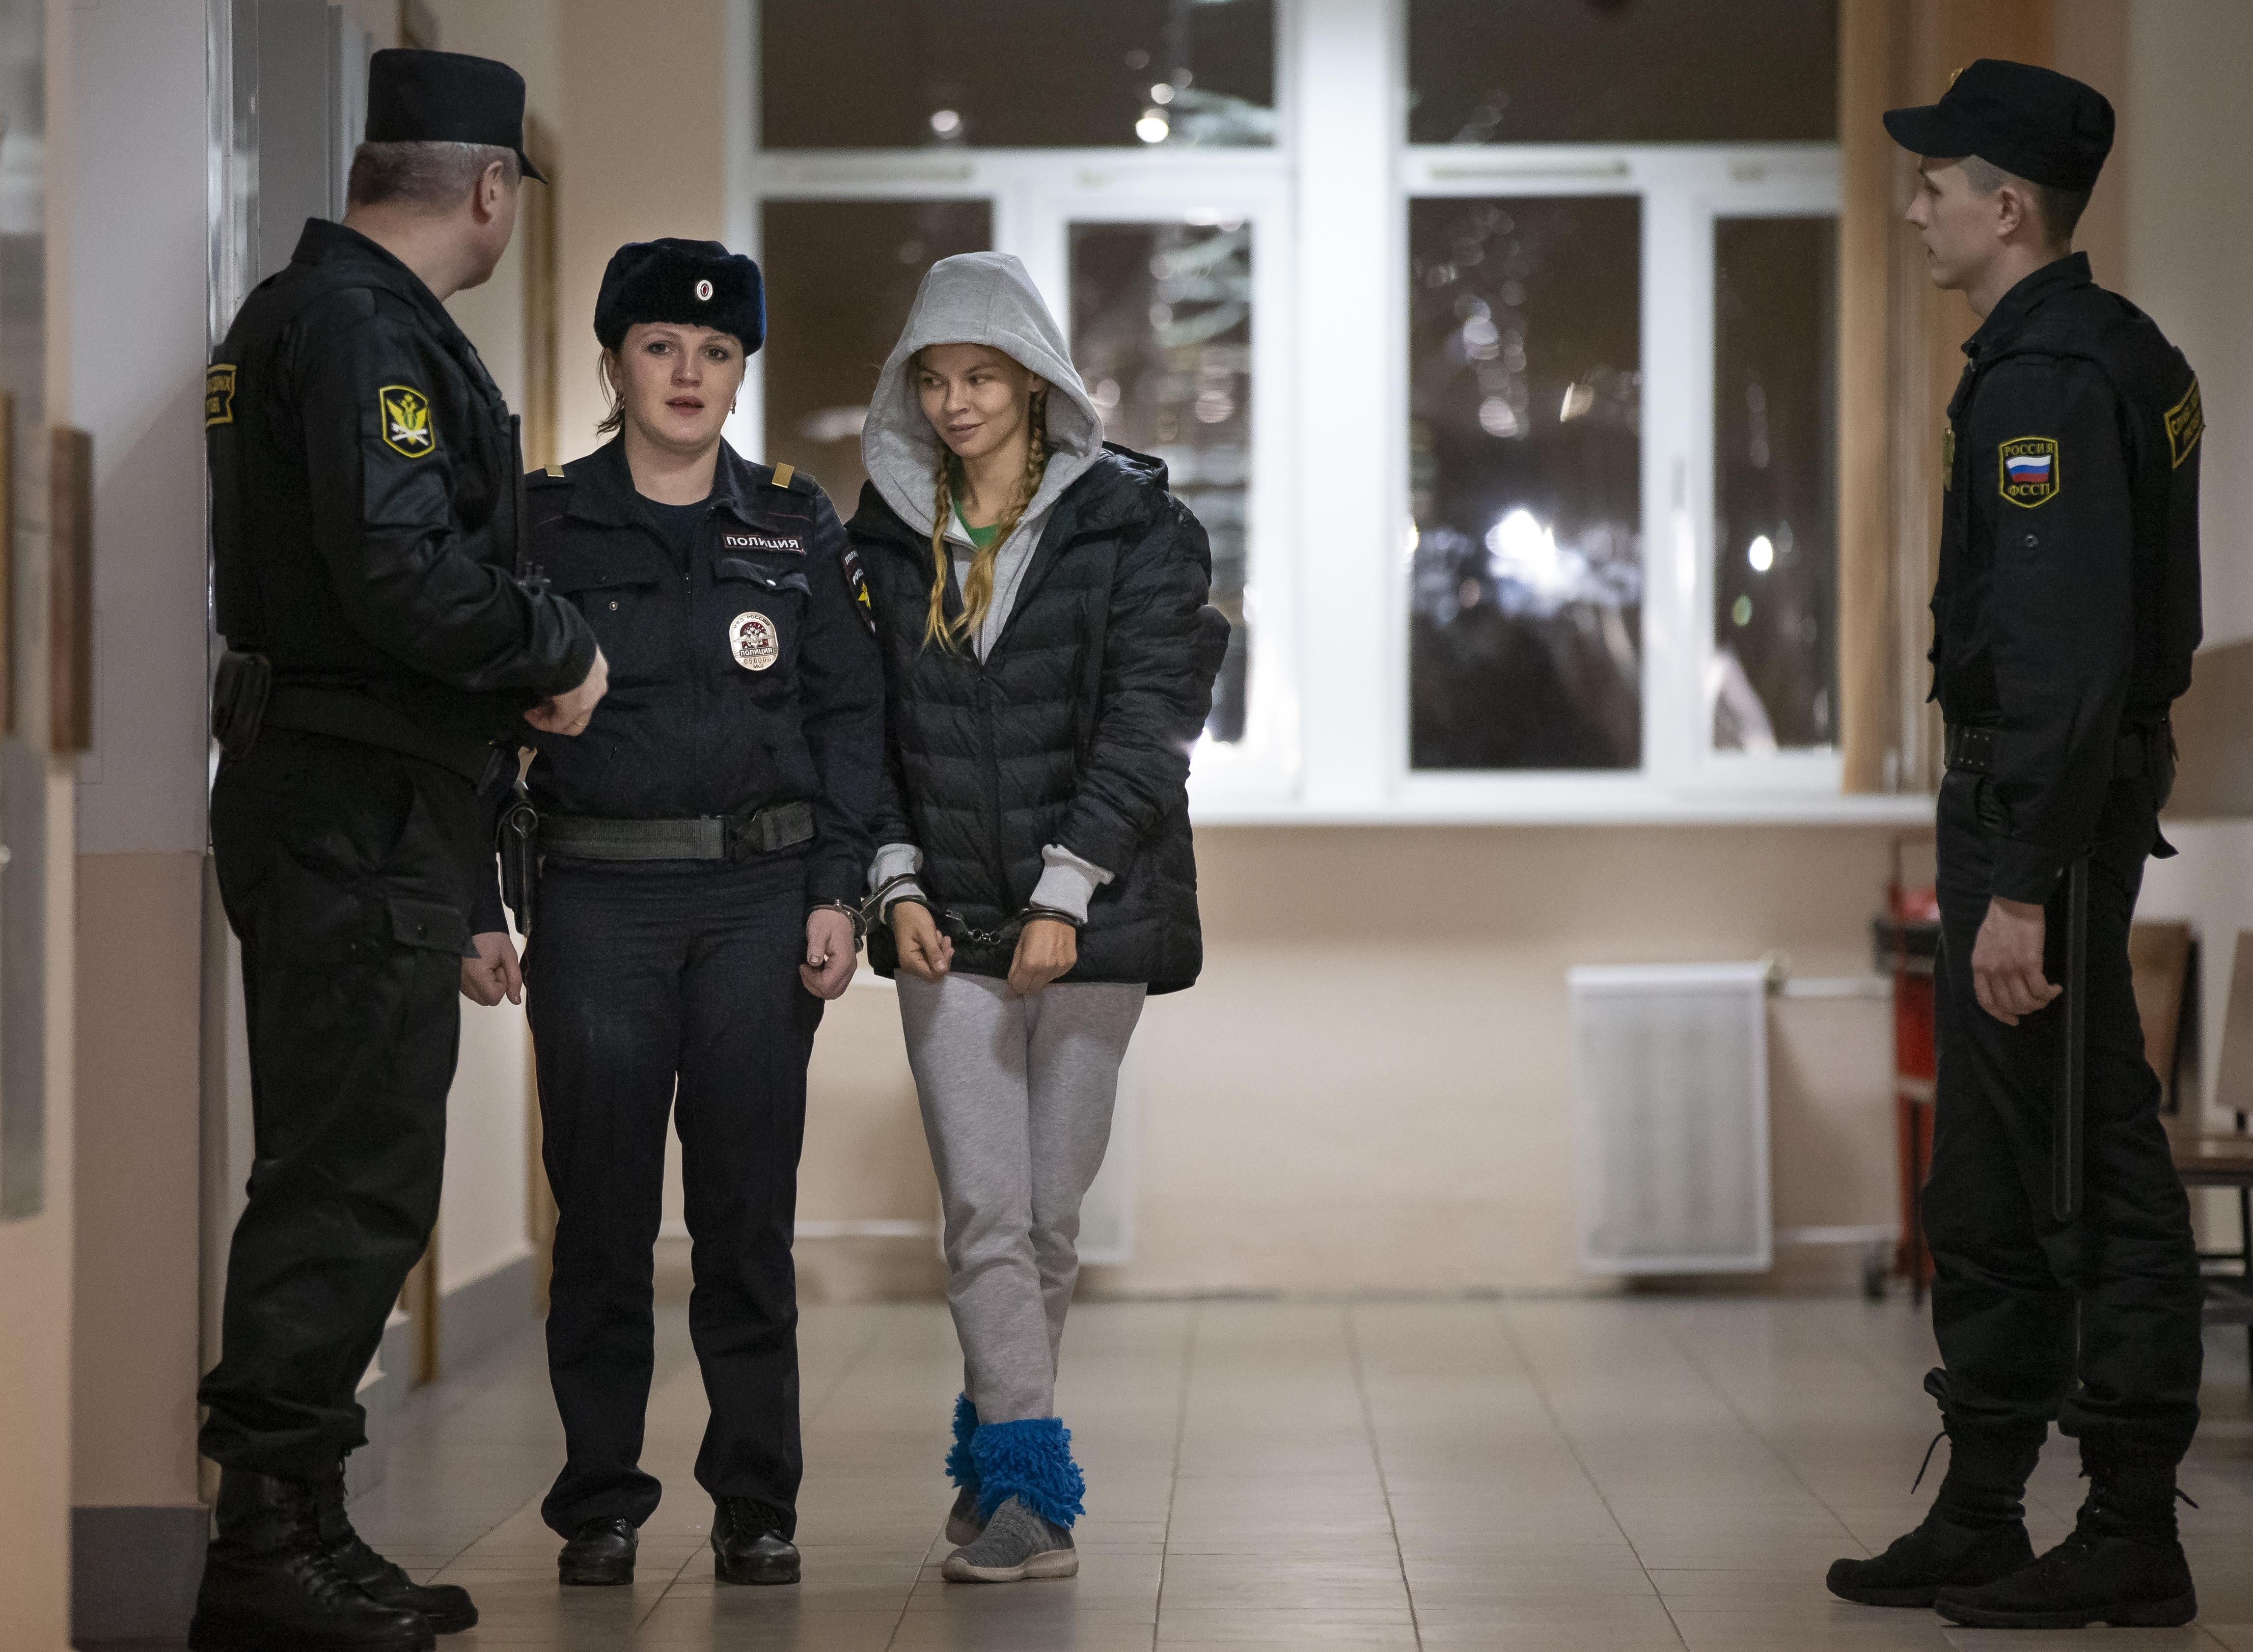 Anastasia Vashukevich, also known on social media as Nastya Rybka, center, is escorted in the court room in Moscow, Russia, Saturday, Jan. 19, 2019. A Belarusian model who claimed last year that she had evidence of Russian interference in the election of Donald Trump as U.S. president was arrested immediately upon her arrival in Moscow on Thursday following deportation from Thailand. (AP Photo/Alexander Zemlianichenko)